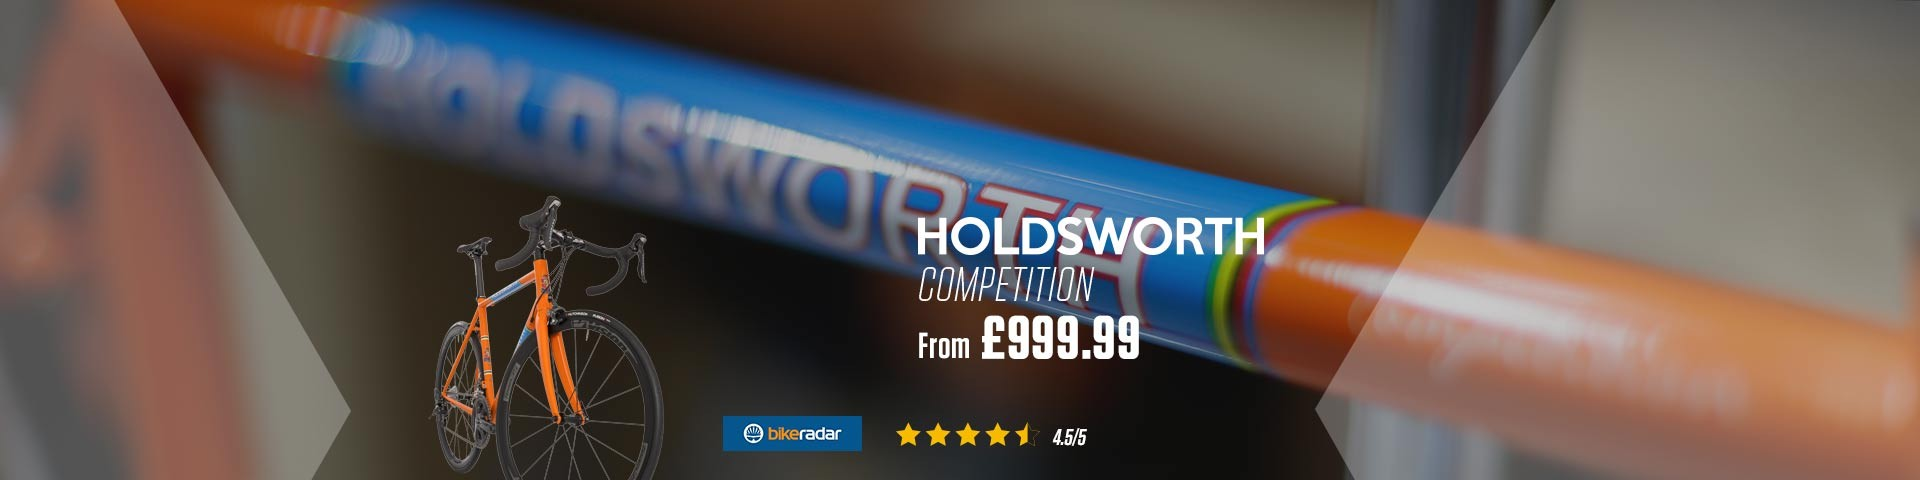 Holdsworth Competition